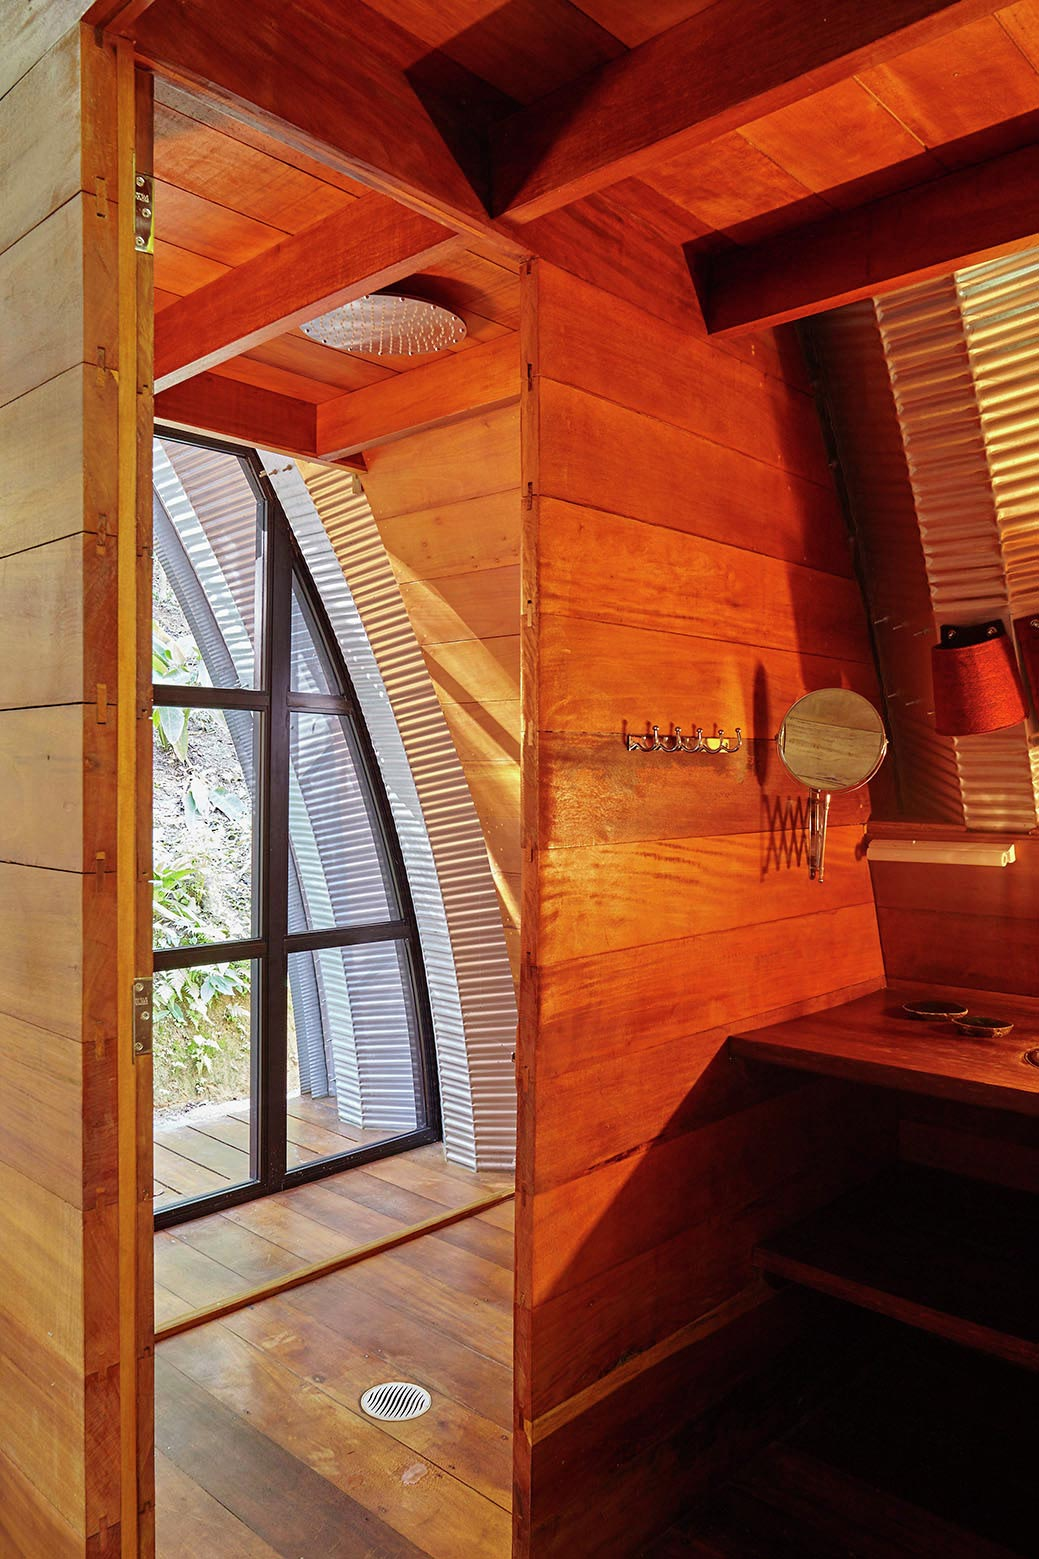 ARCA-home-in-the-middle-of-the-Brazilian-Atlantic-Forest-by-Atelier-Marko-Brajovic-11